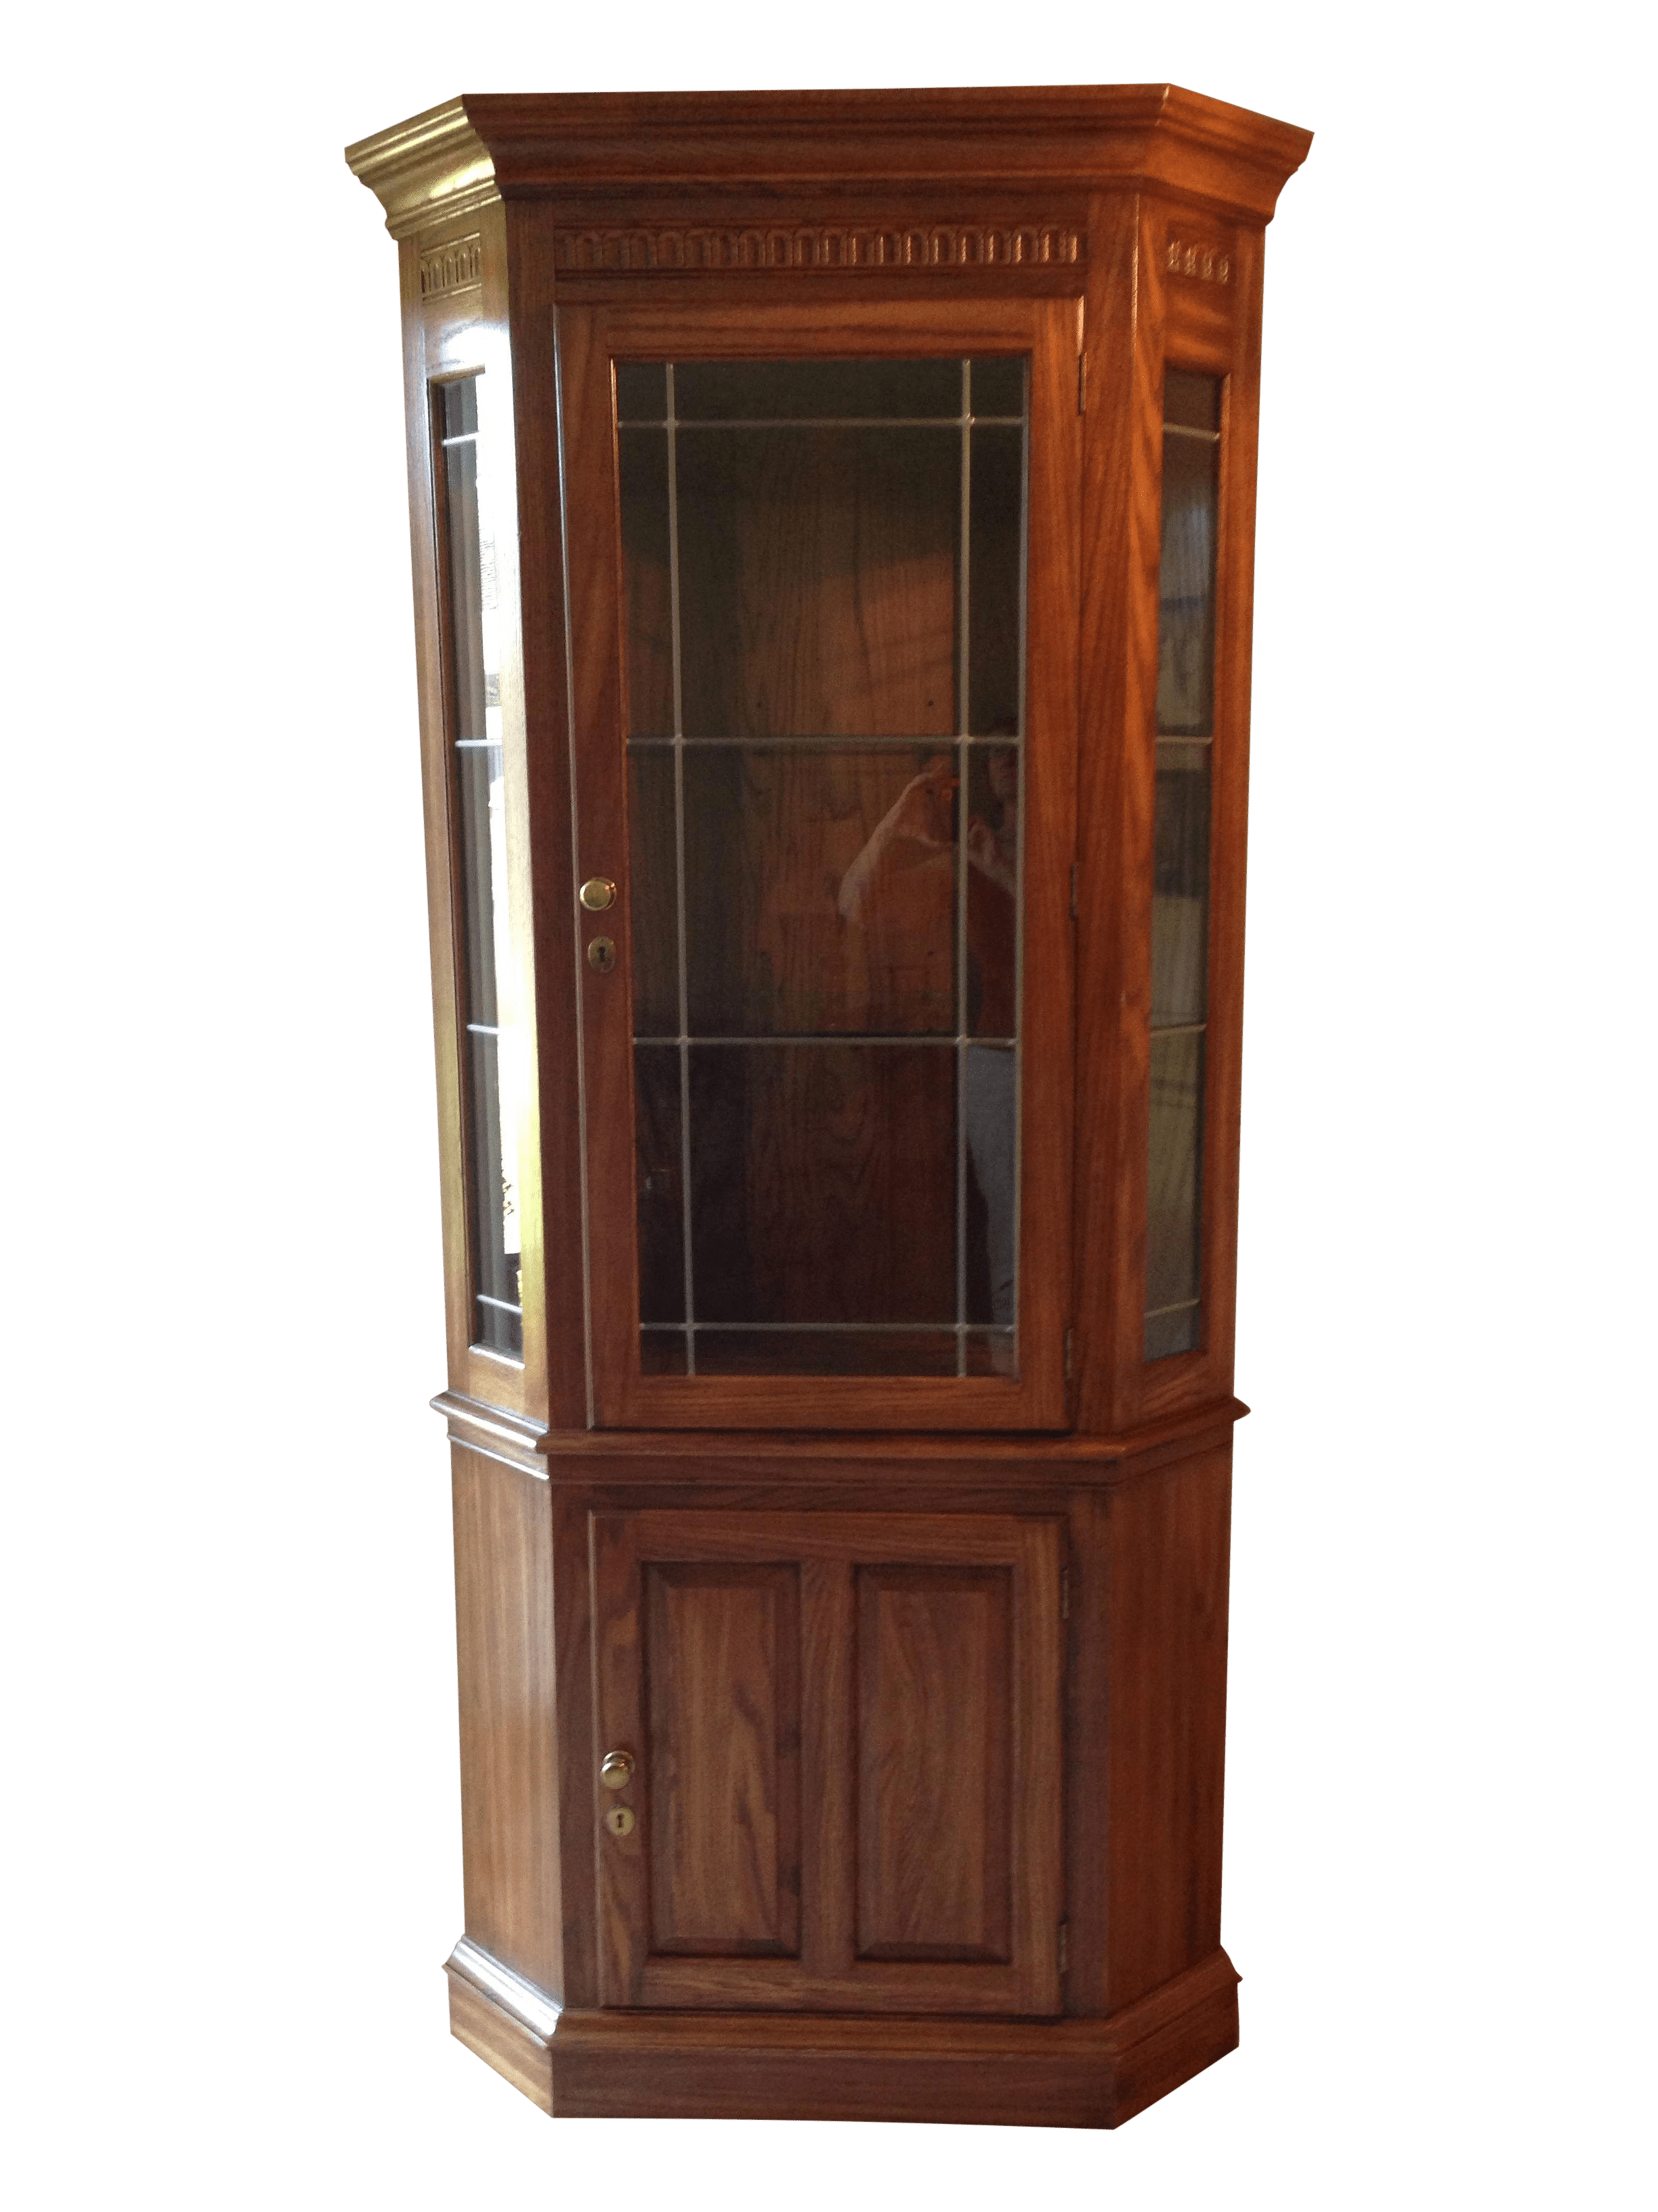 design within reach rocking chair ikea replacement covers uk pennsylvania house lighted corner china cabinet | chairish